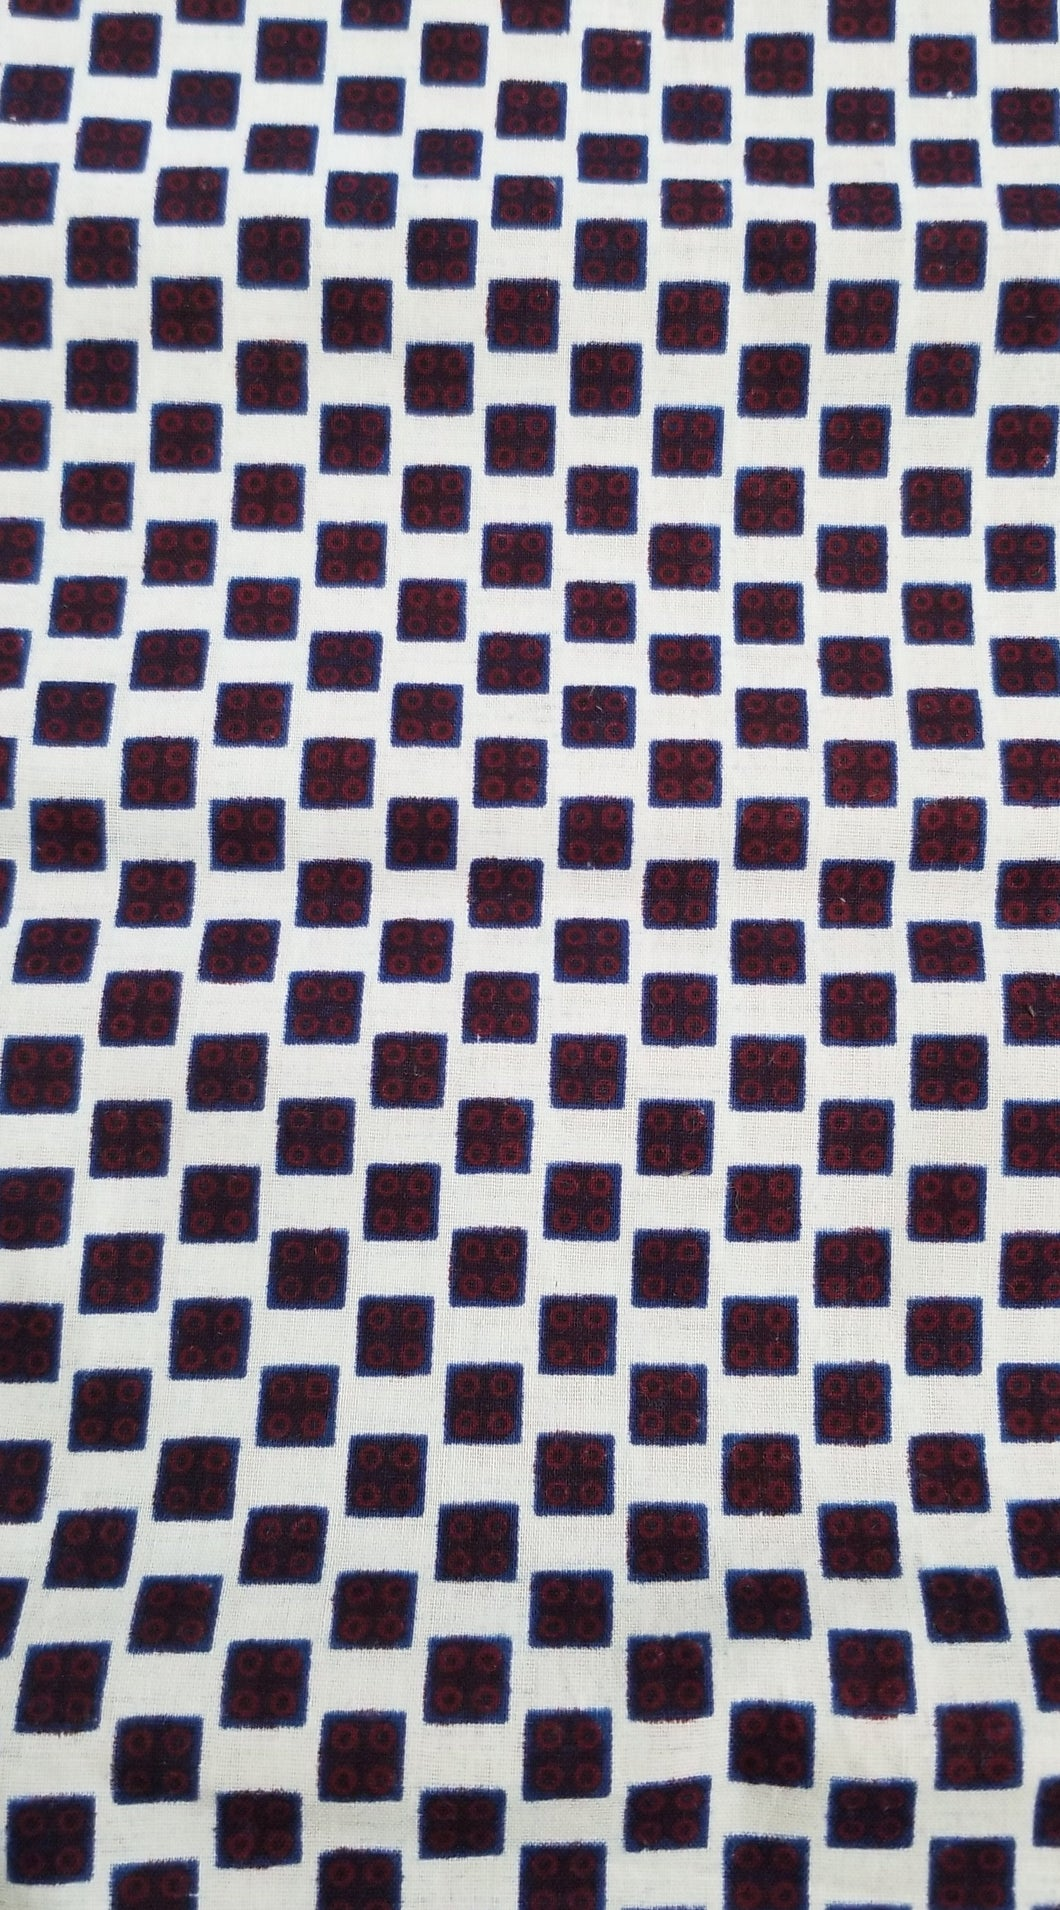 Checkerboard Ankara Fabric (2 yds)